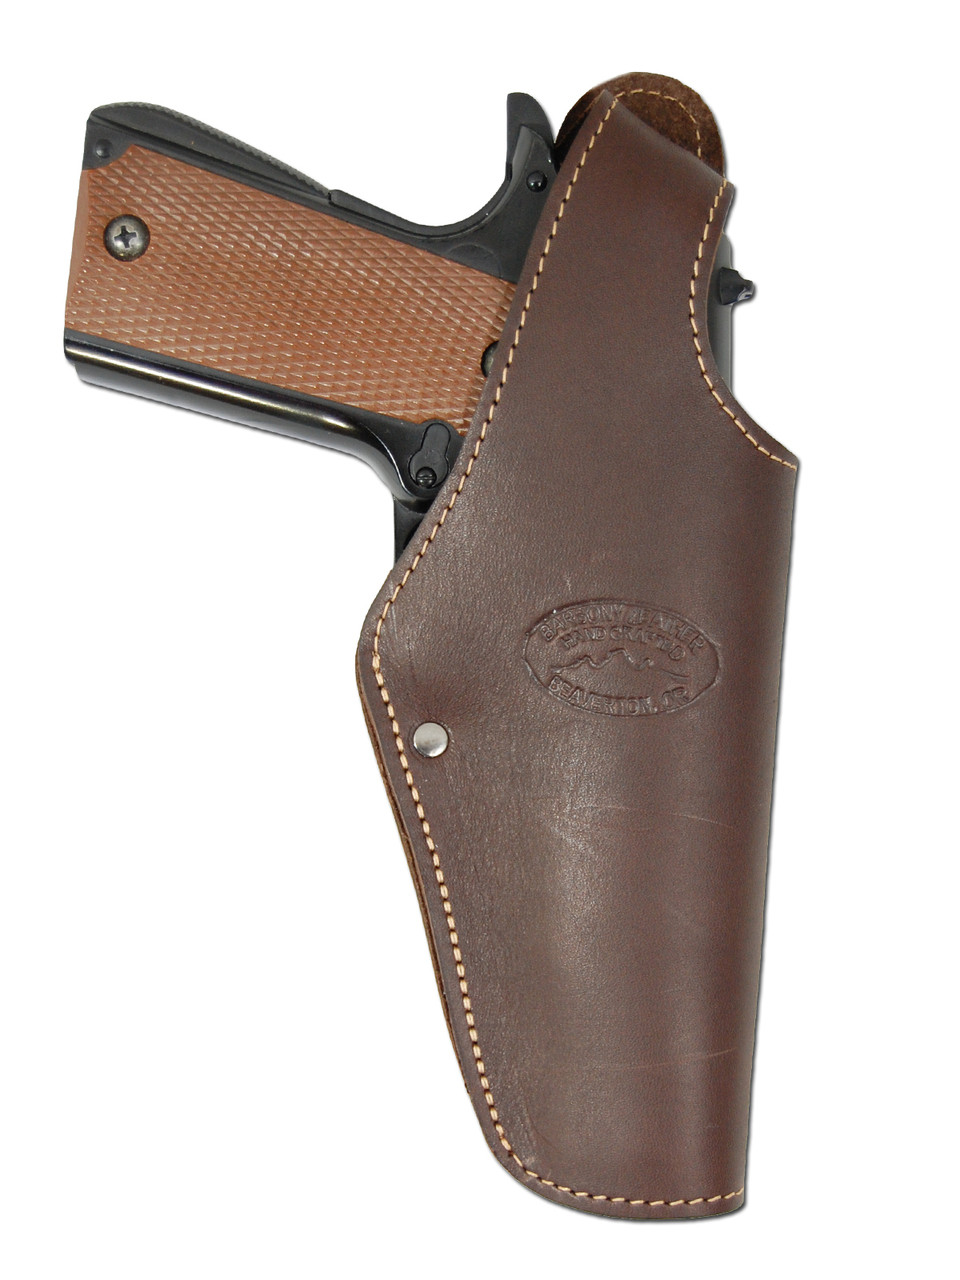 Holsters, Belts & Pouches New Barsony Brown Leather Flap Gun Holster